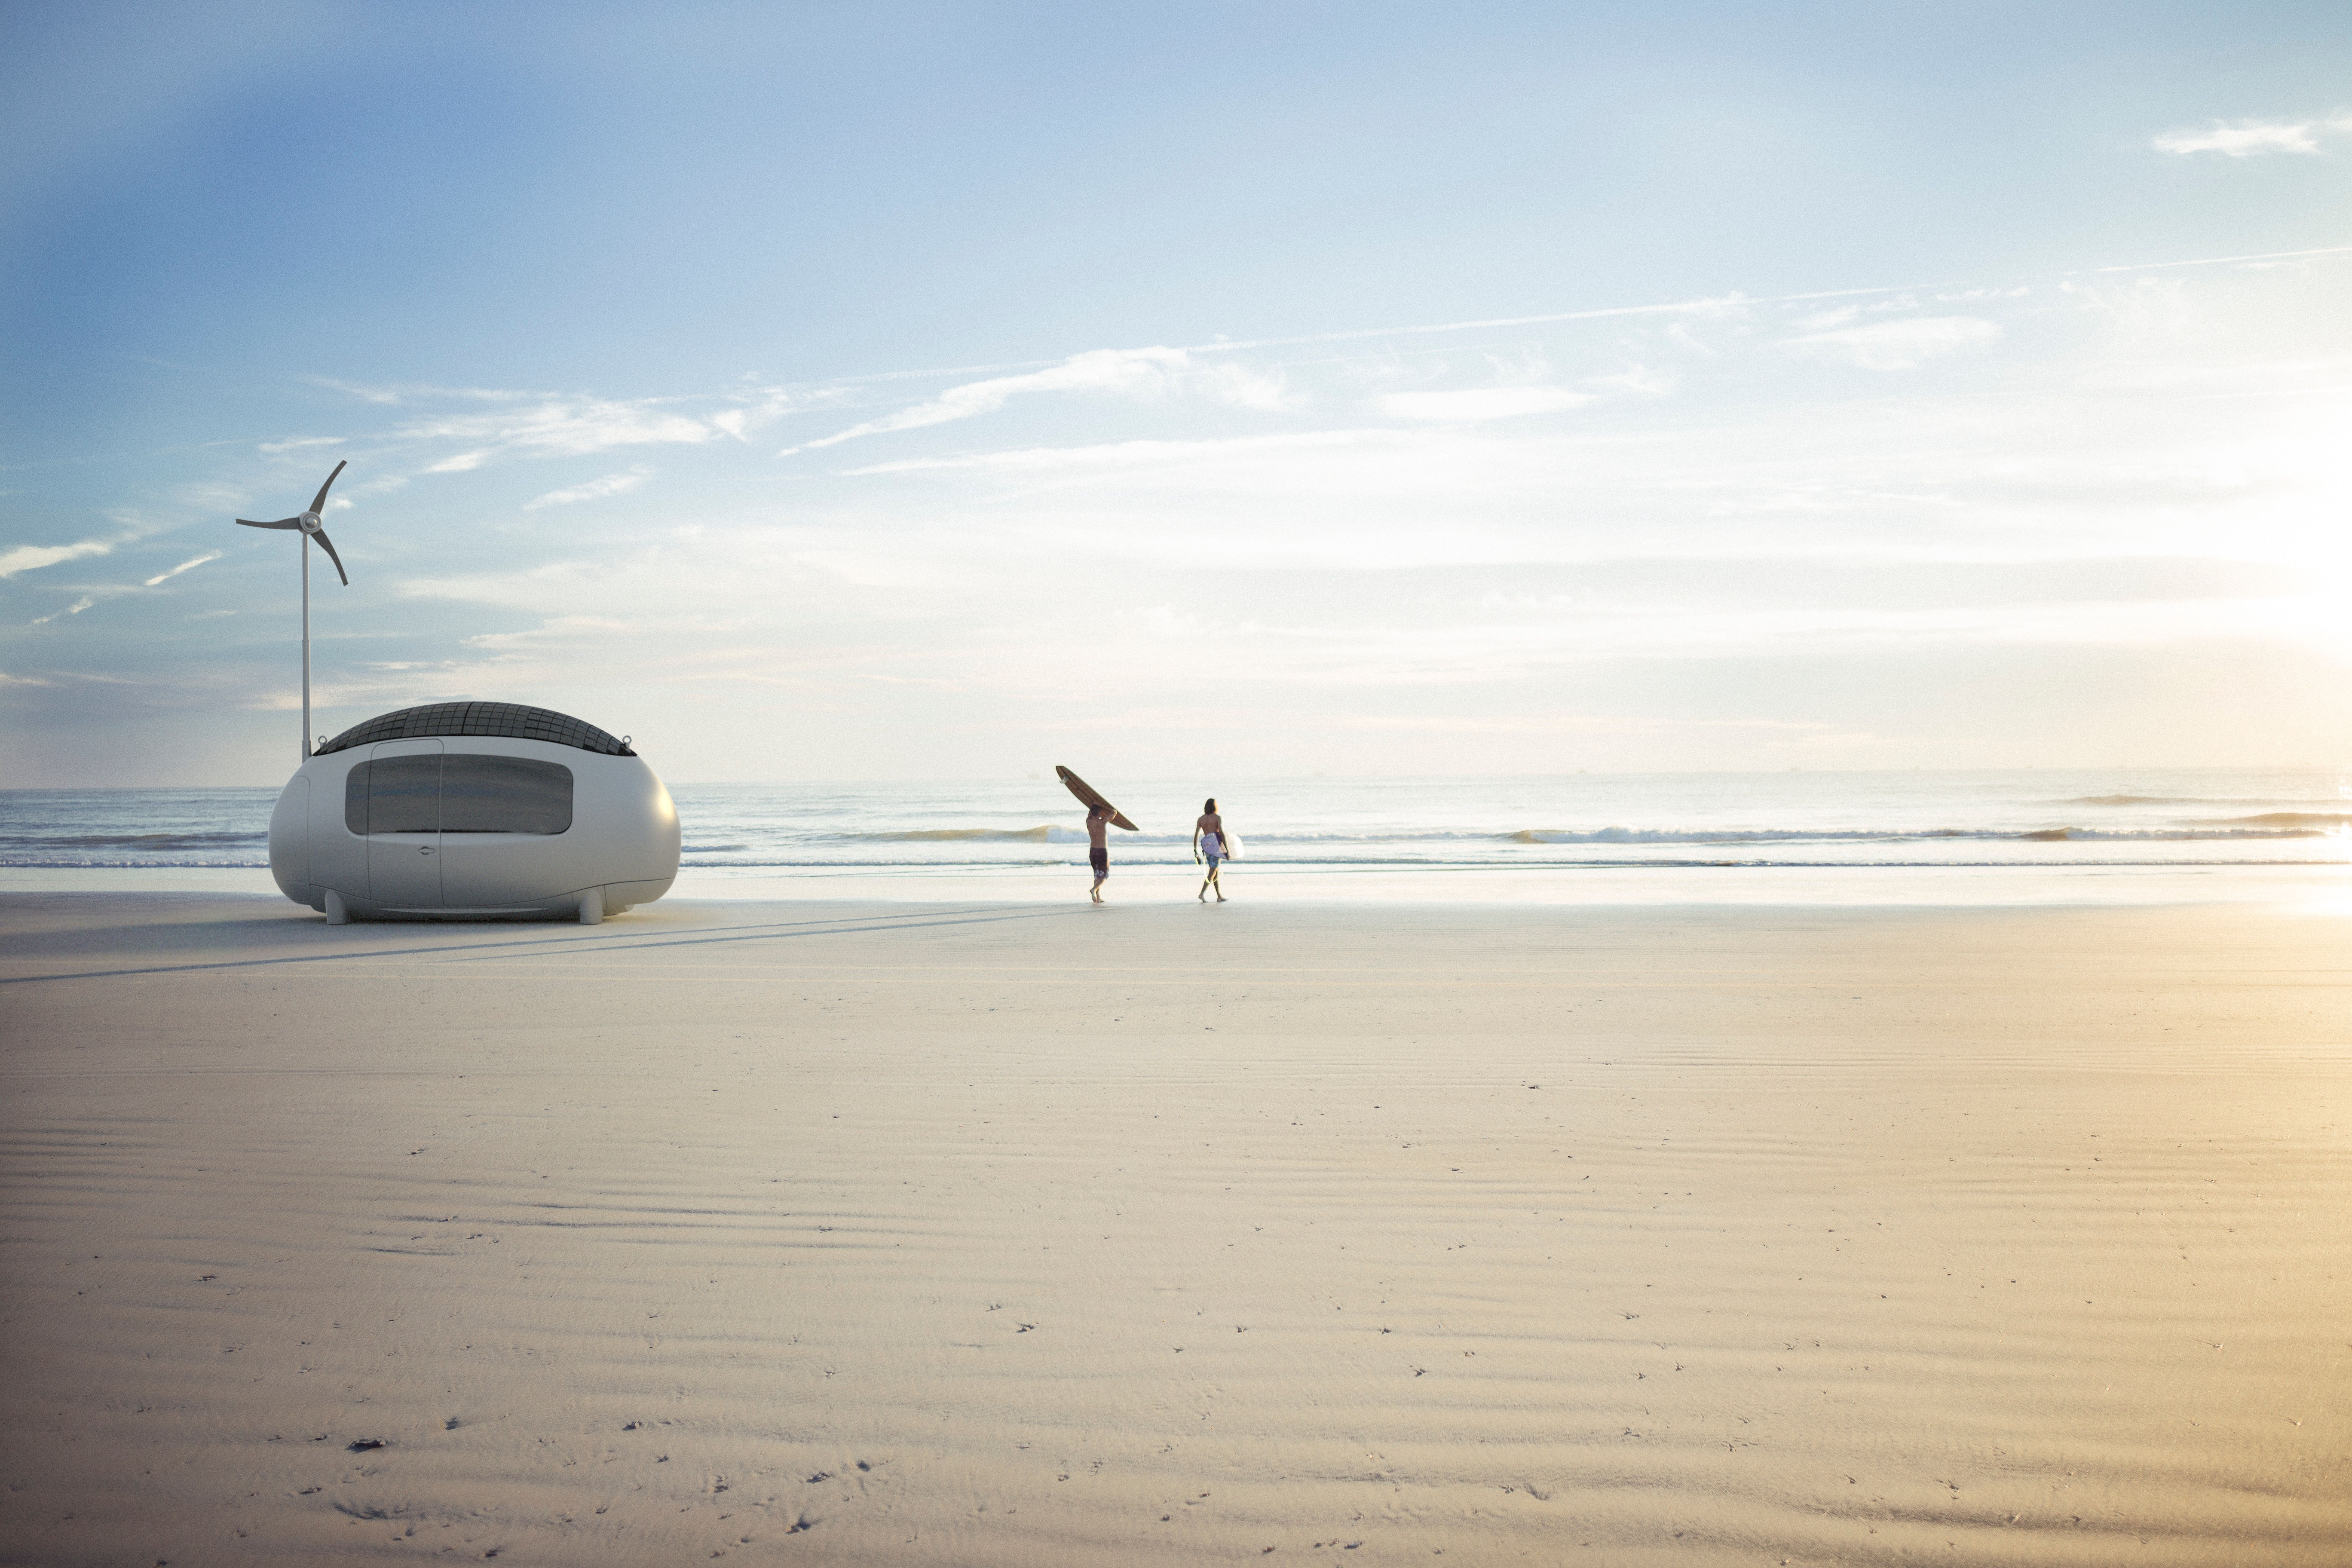 Ecocapsule owners on their way to surf.